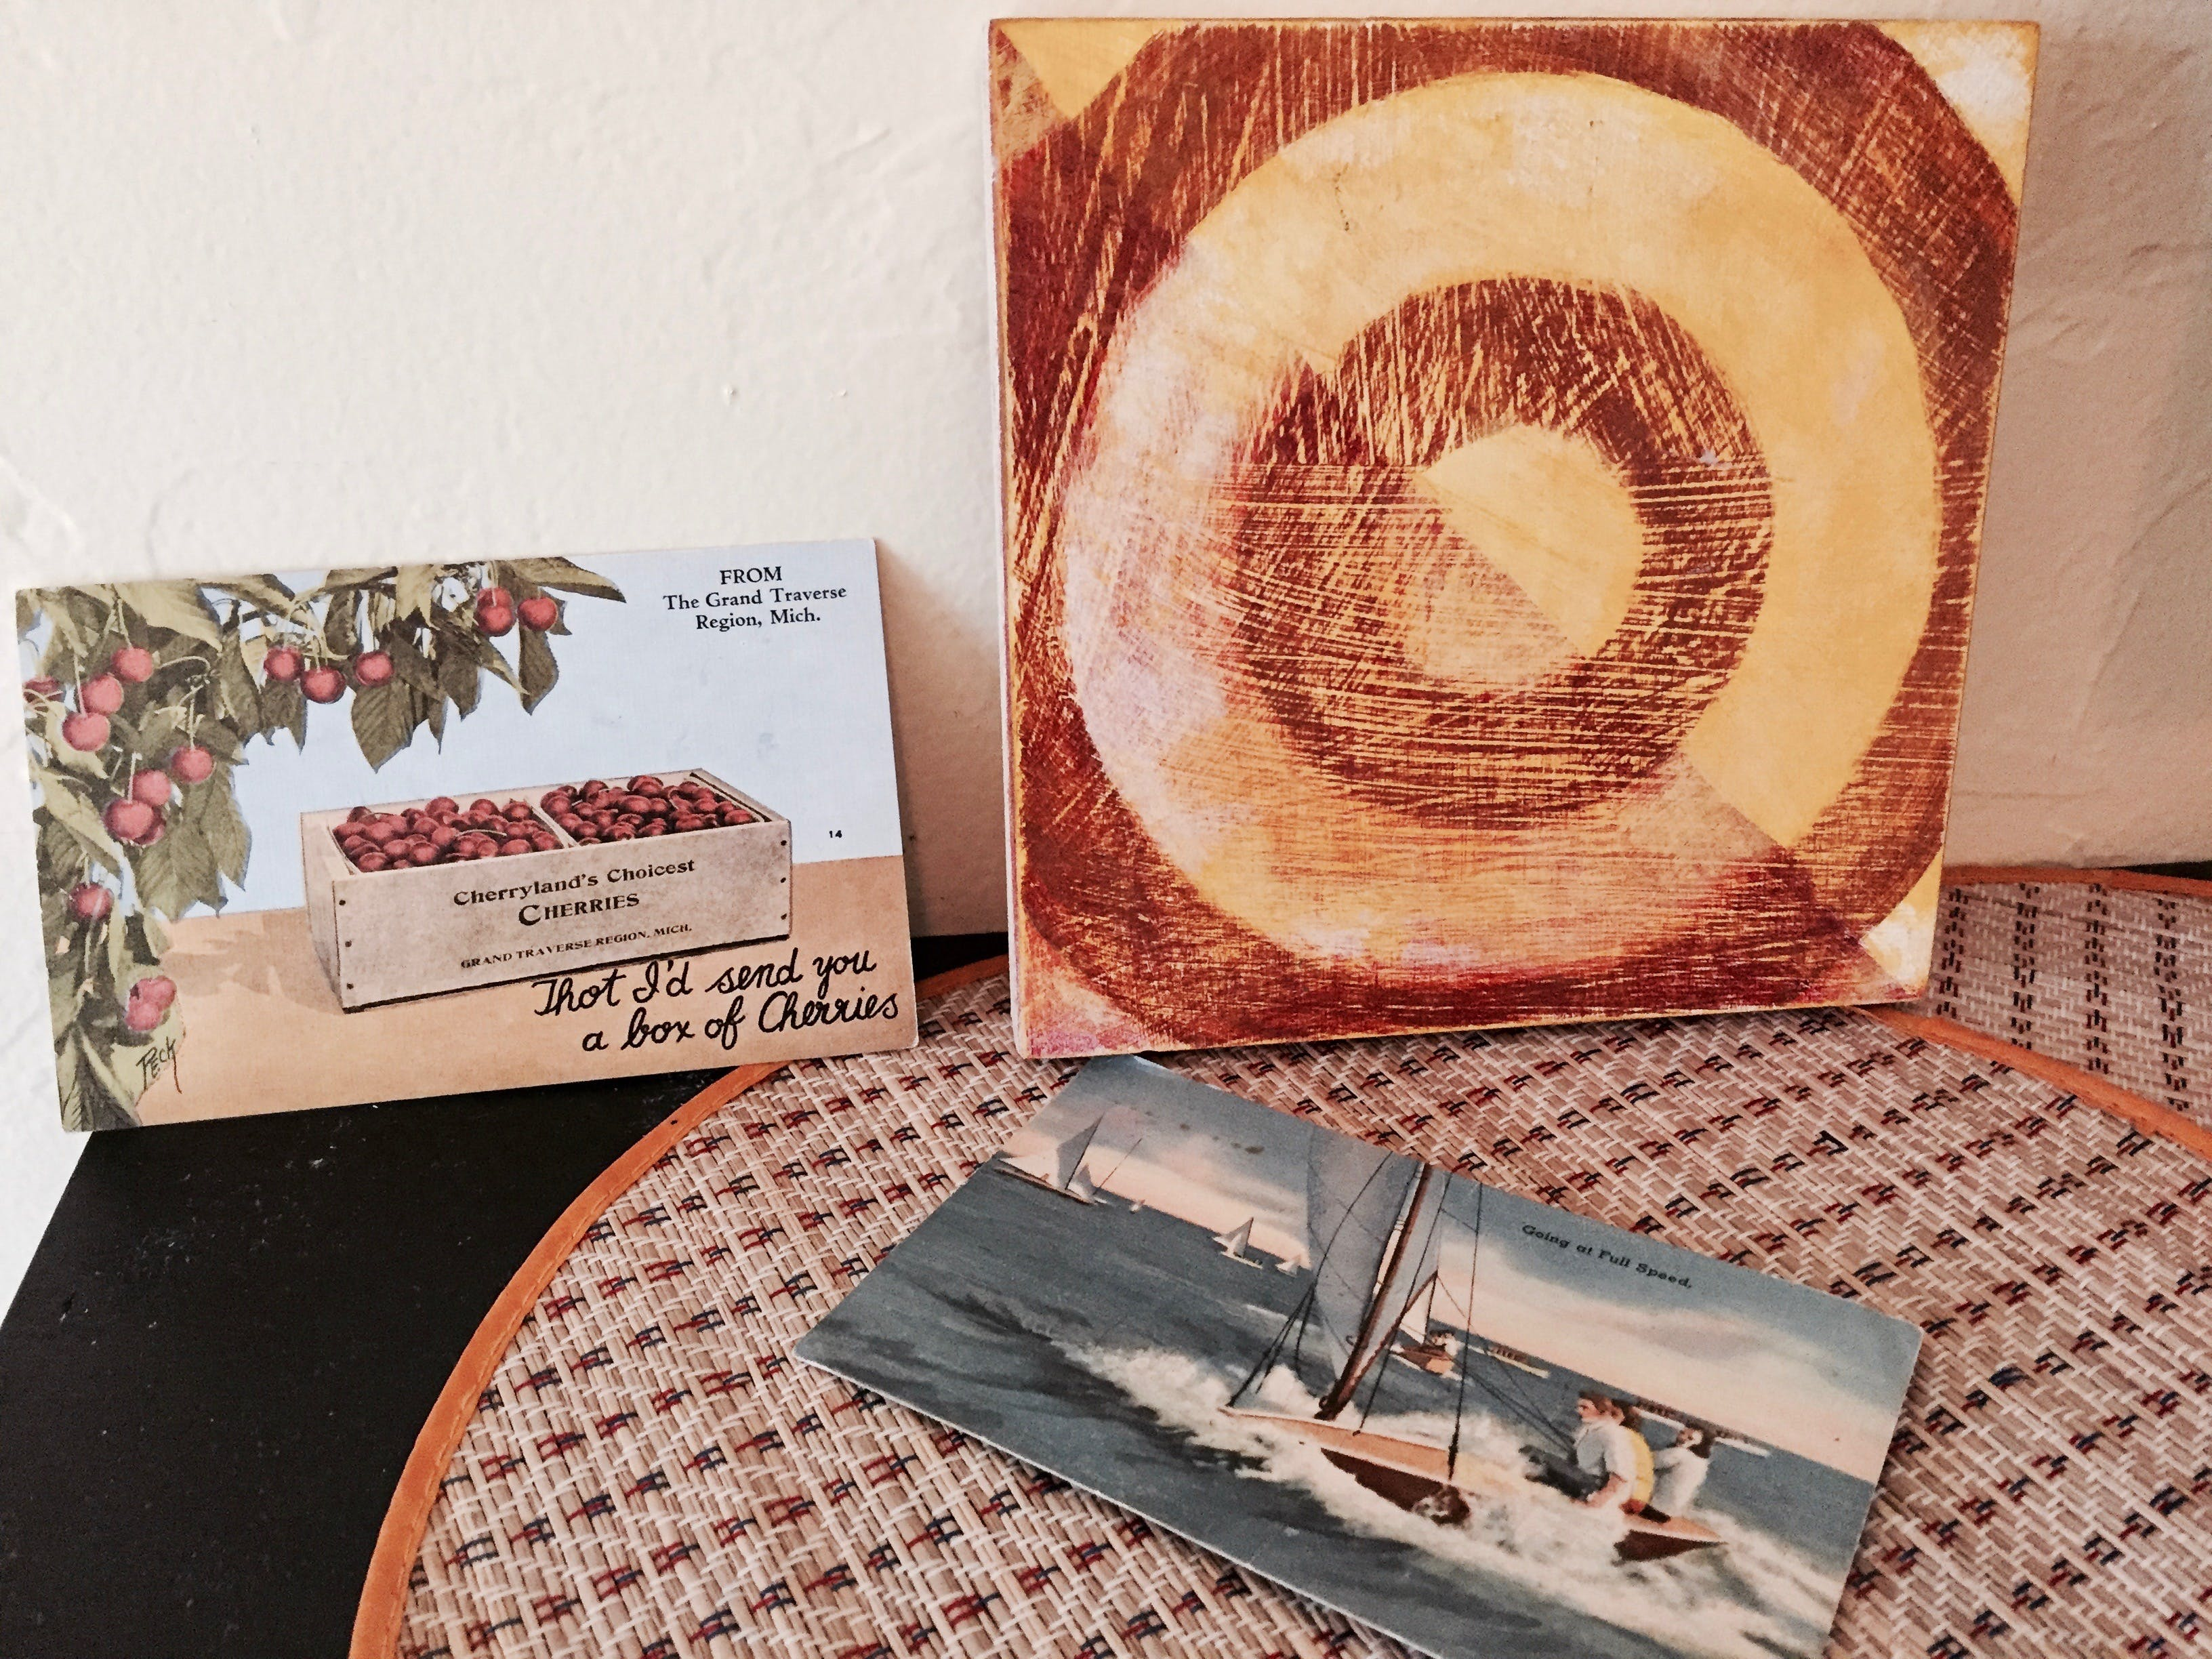 Modern art, vintage postcards